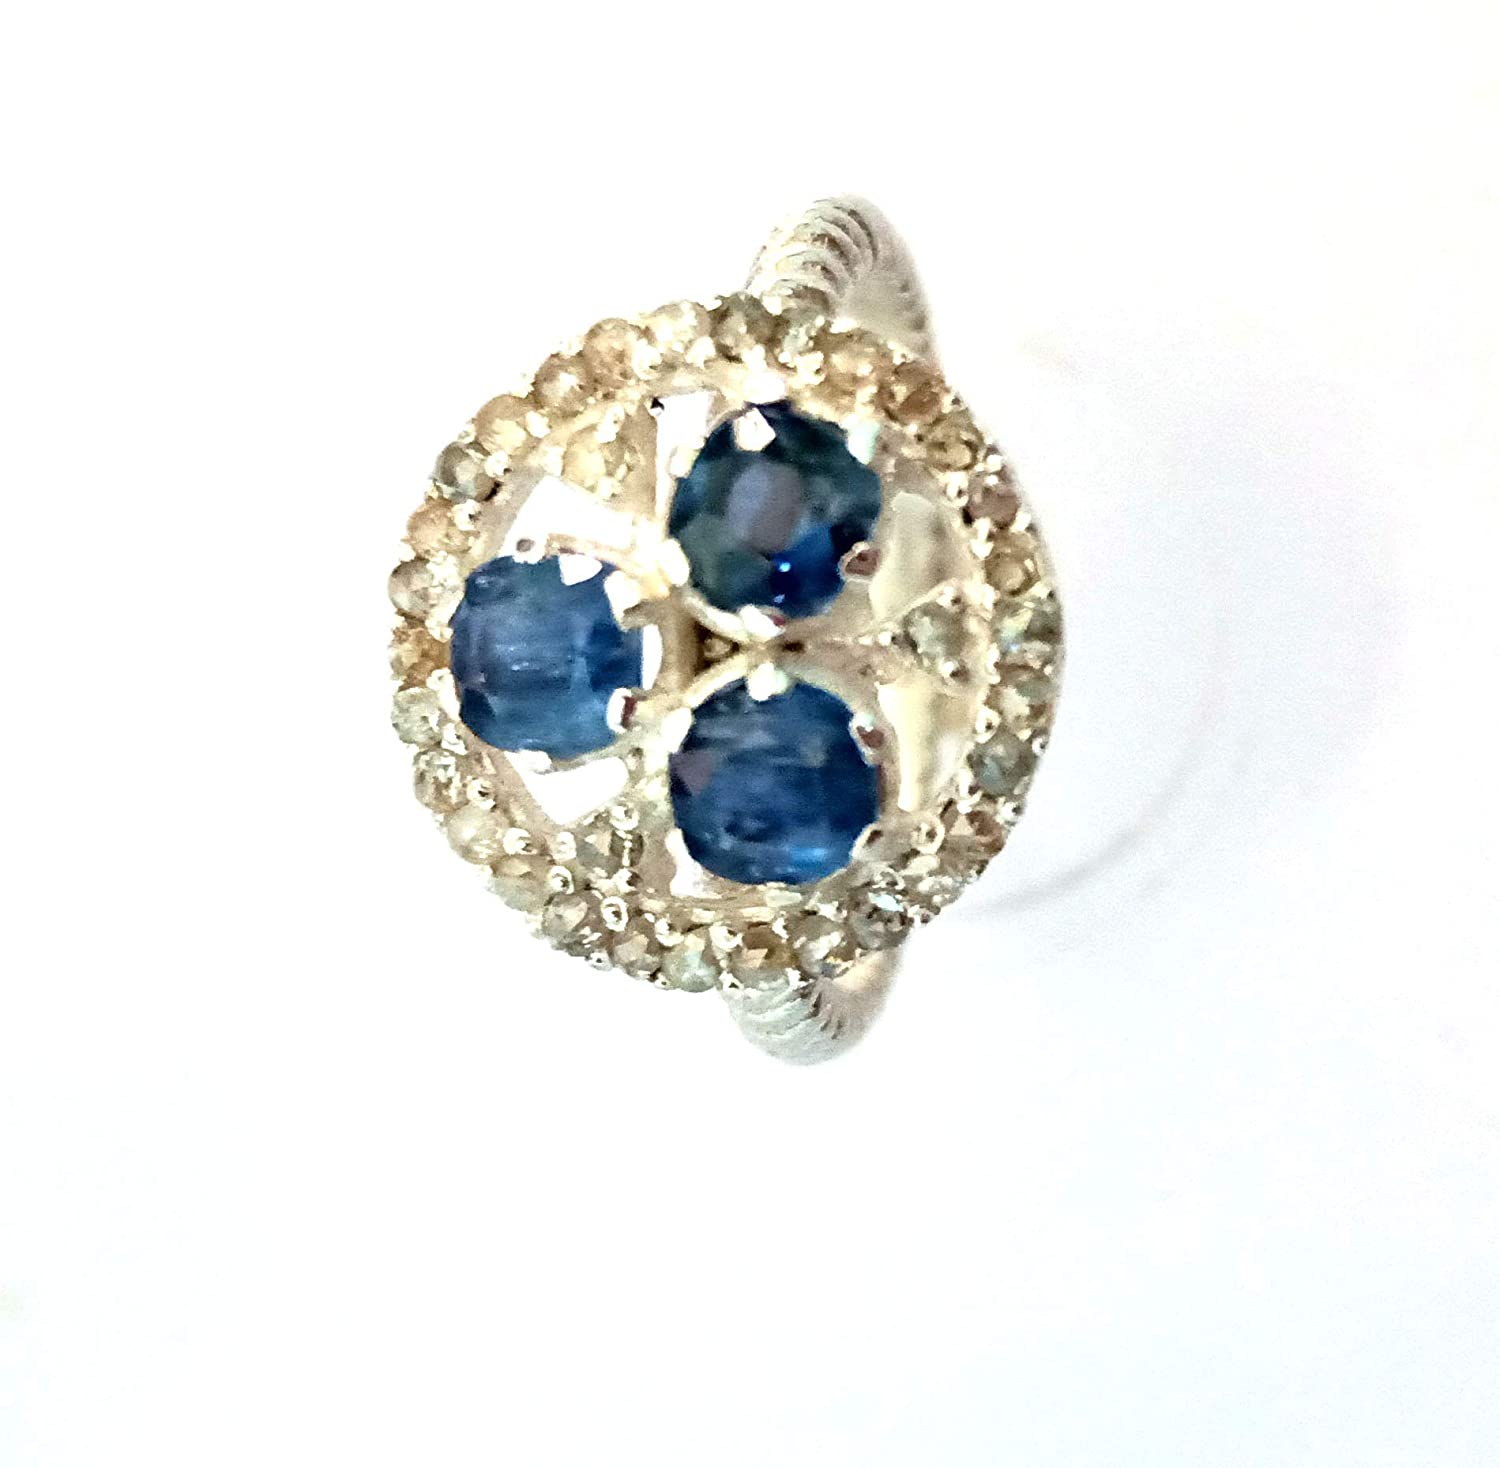 Rupa Gems Handmade Silver Finish Ring Solid 925 Sterling Silver Ring Blue Sapphire & Pave Diamond Ring